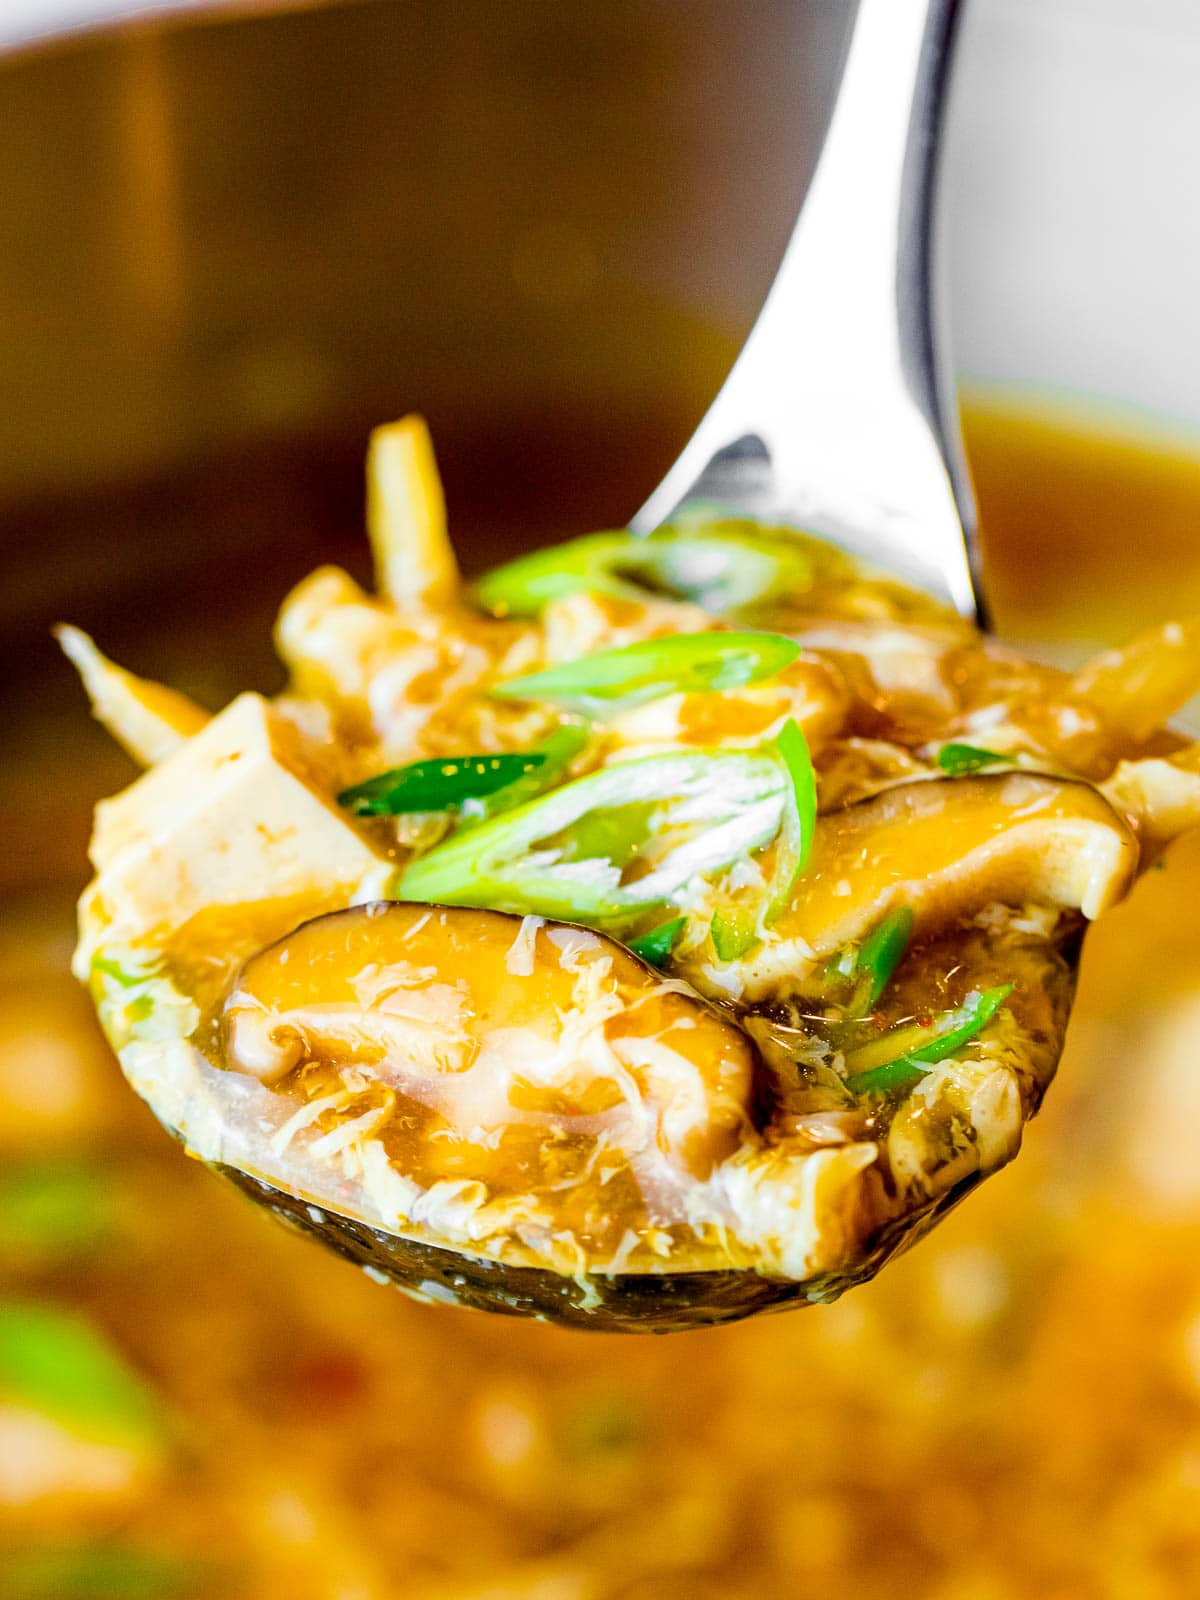 a ladle of vegetarian hot and sour soup with mushrooms, tofu, and scallions